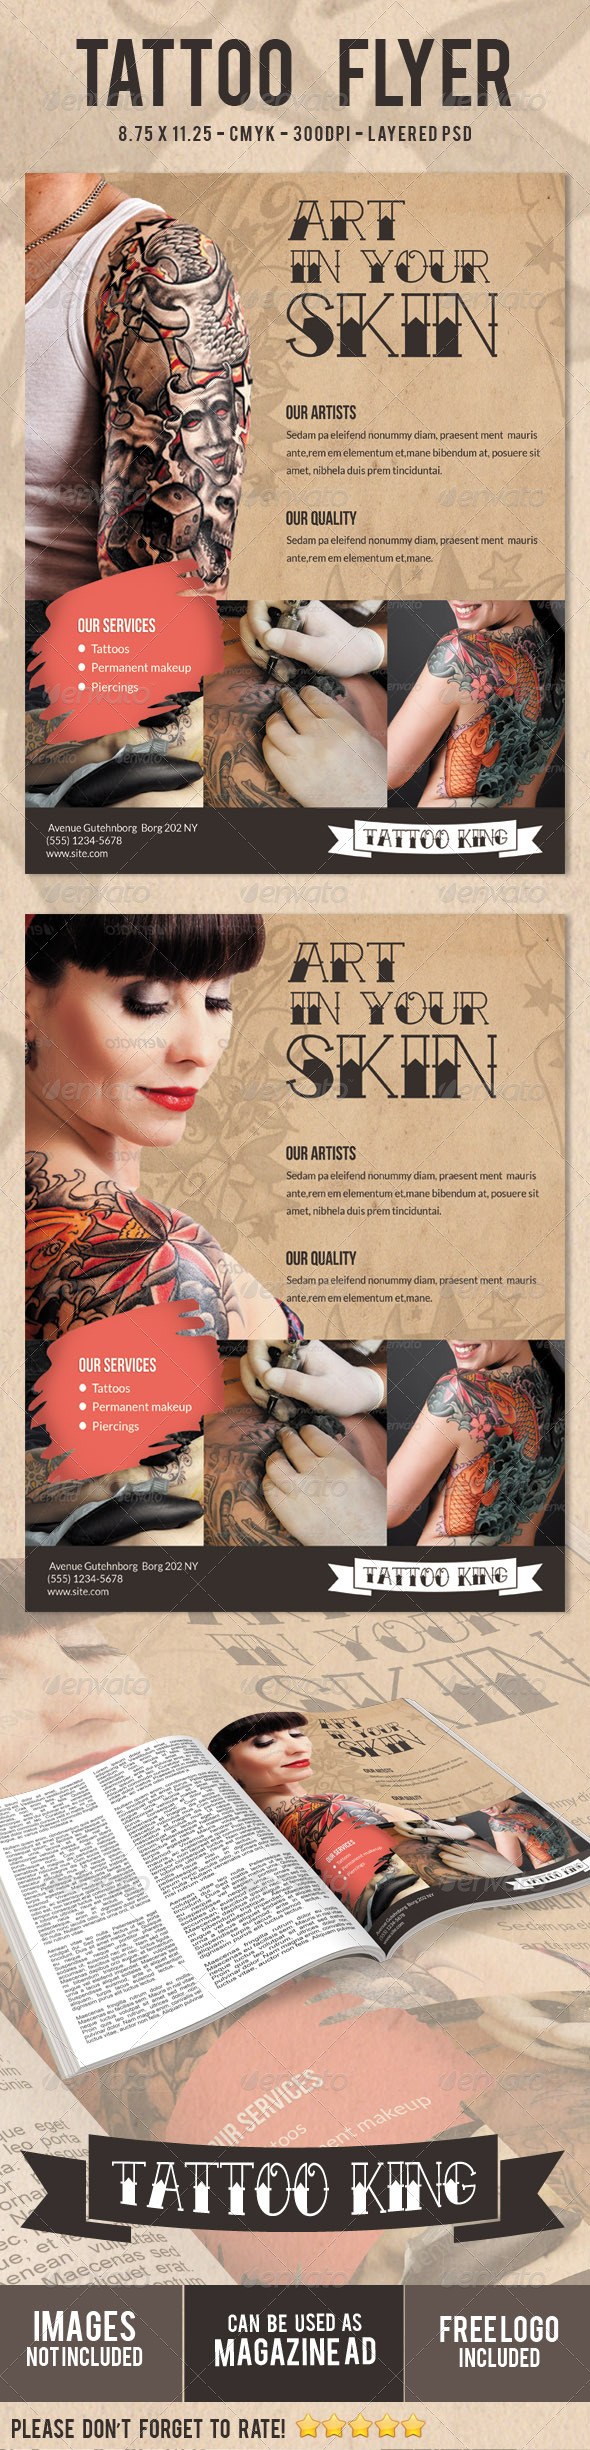 GraphicRiver Tattoo Flyer Print Ad 5243381